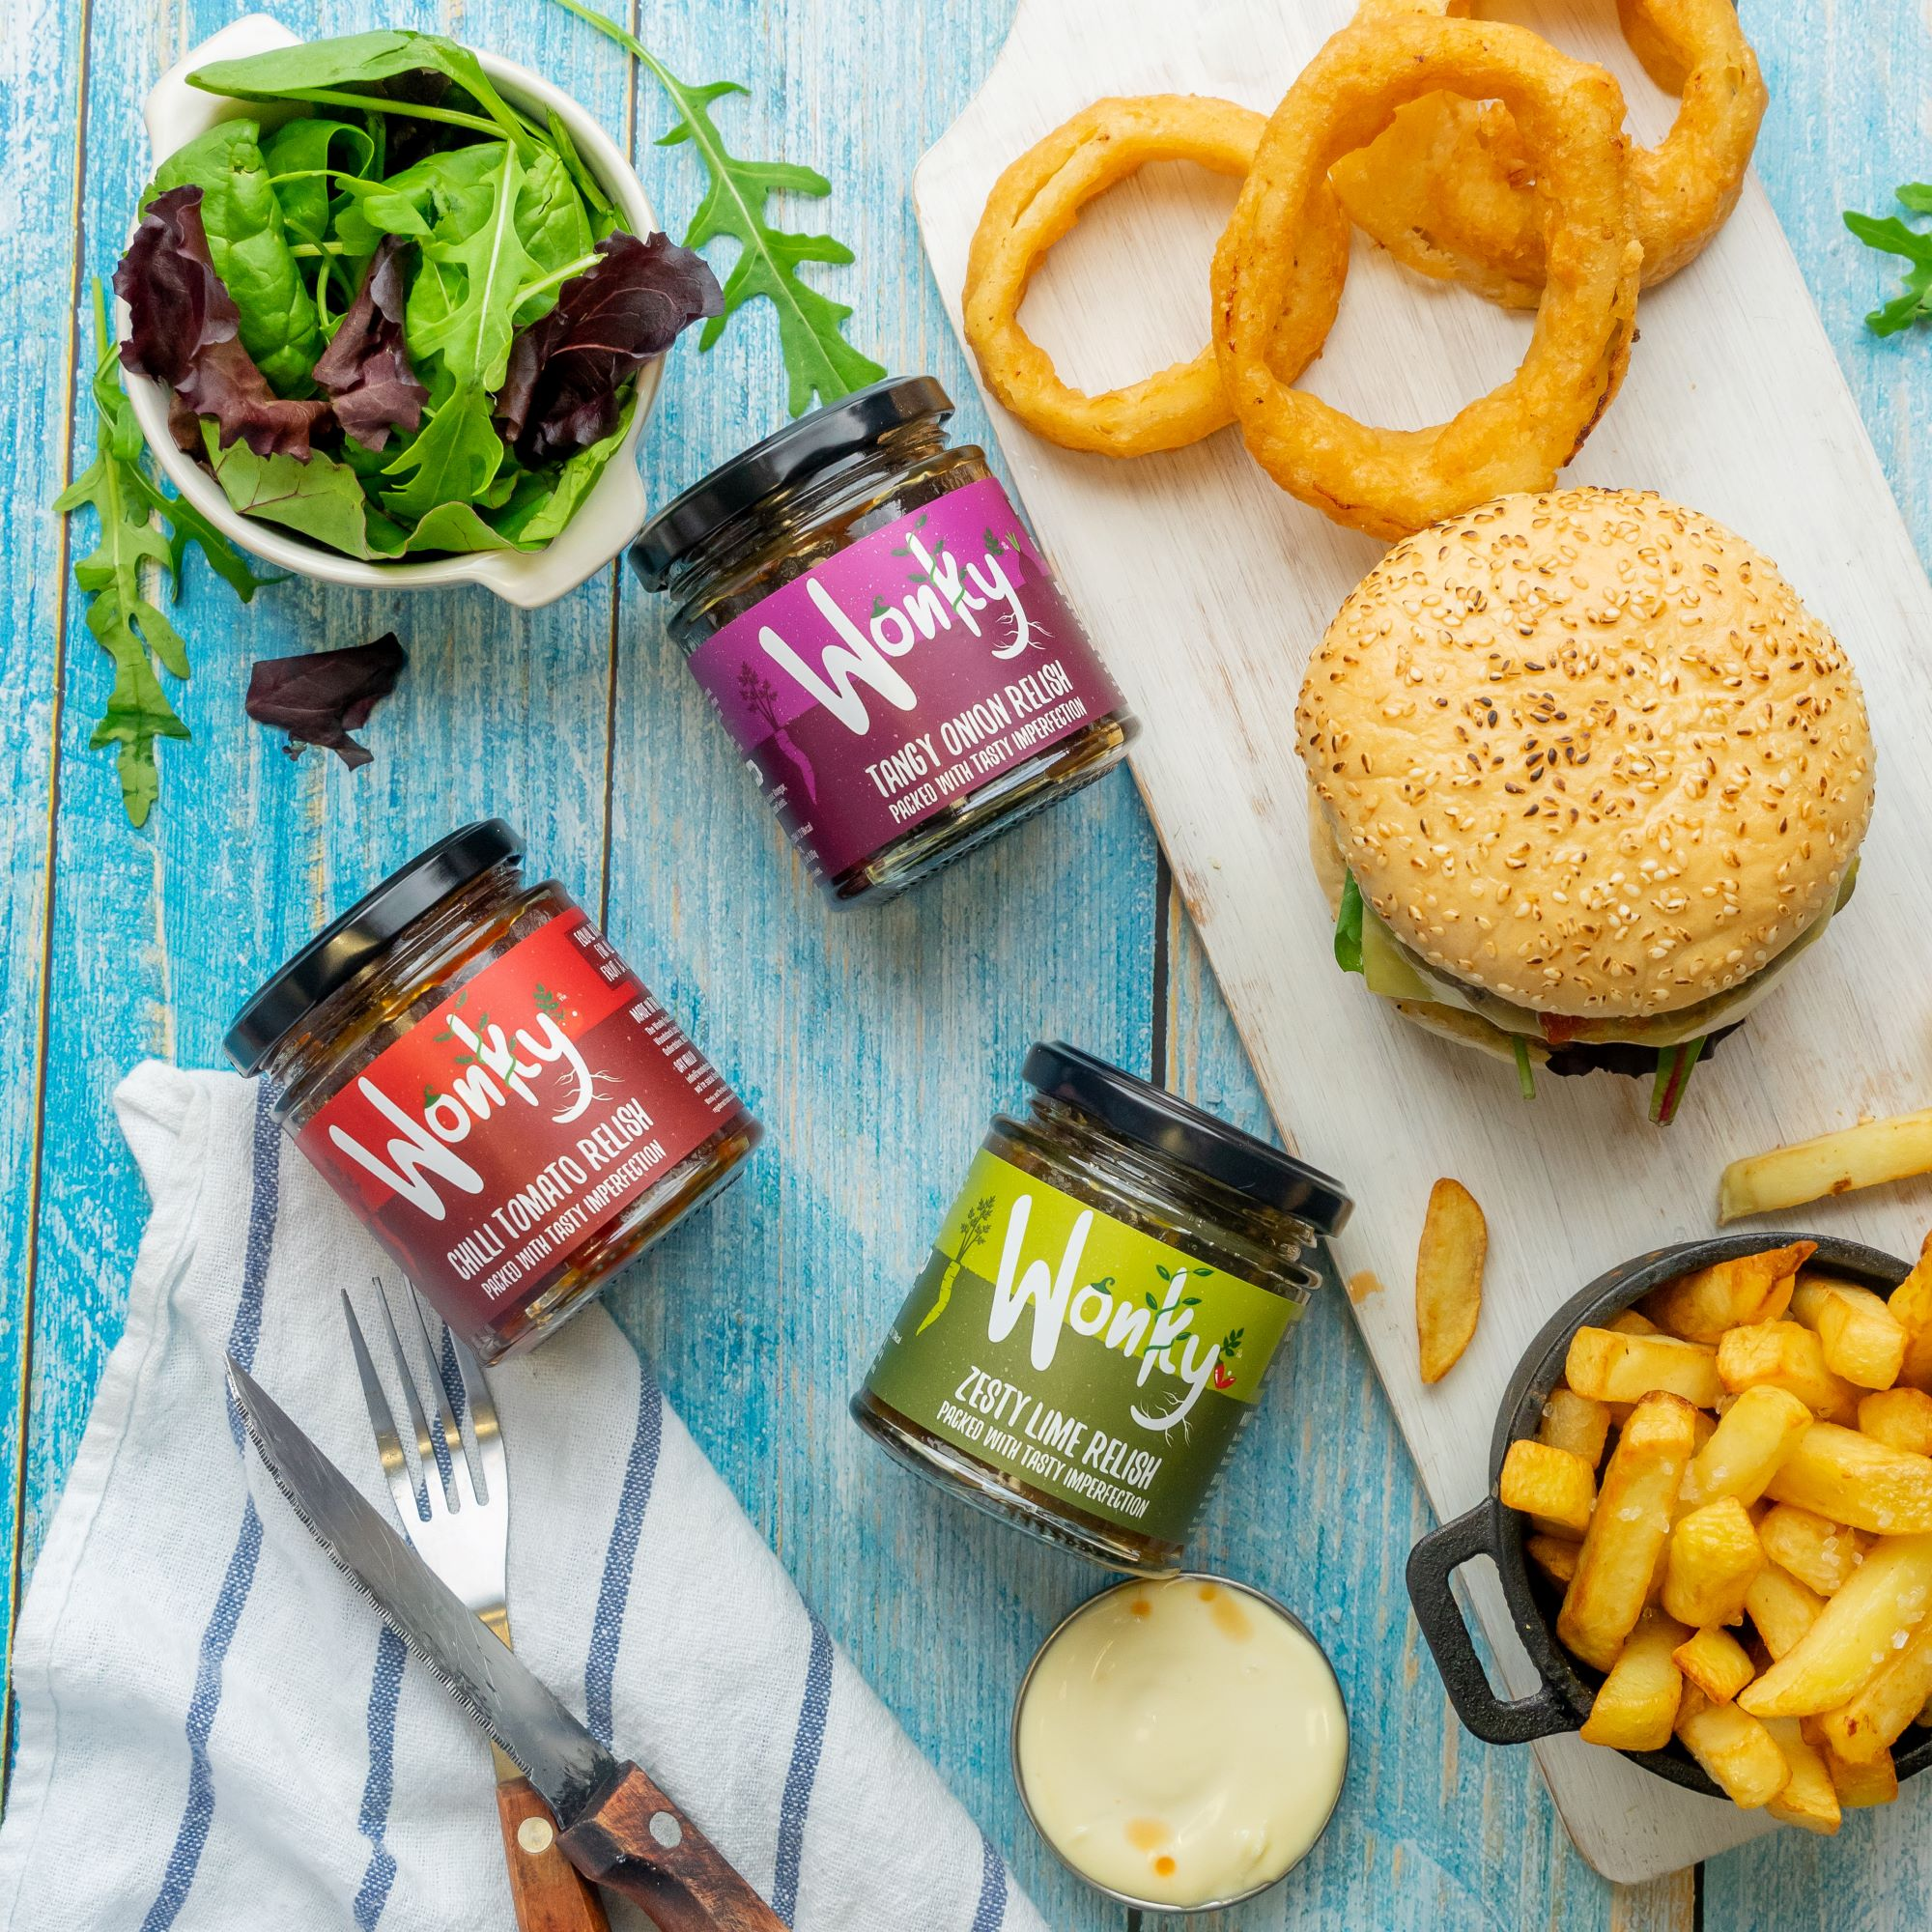 The Wonky Food Co 'Pick & Mix' Gift Box – Chilli Tomato, Zesty Lime or Tangy Onion Relish Kind Shop 6